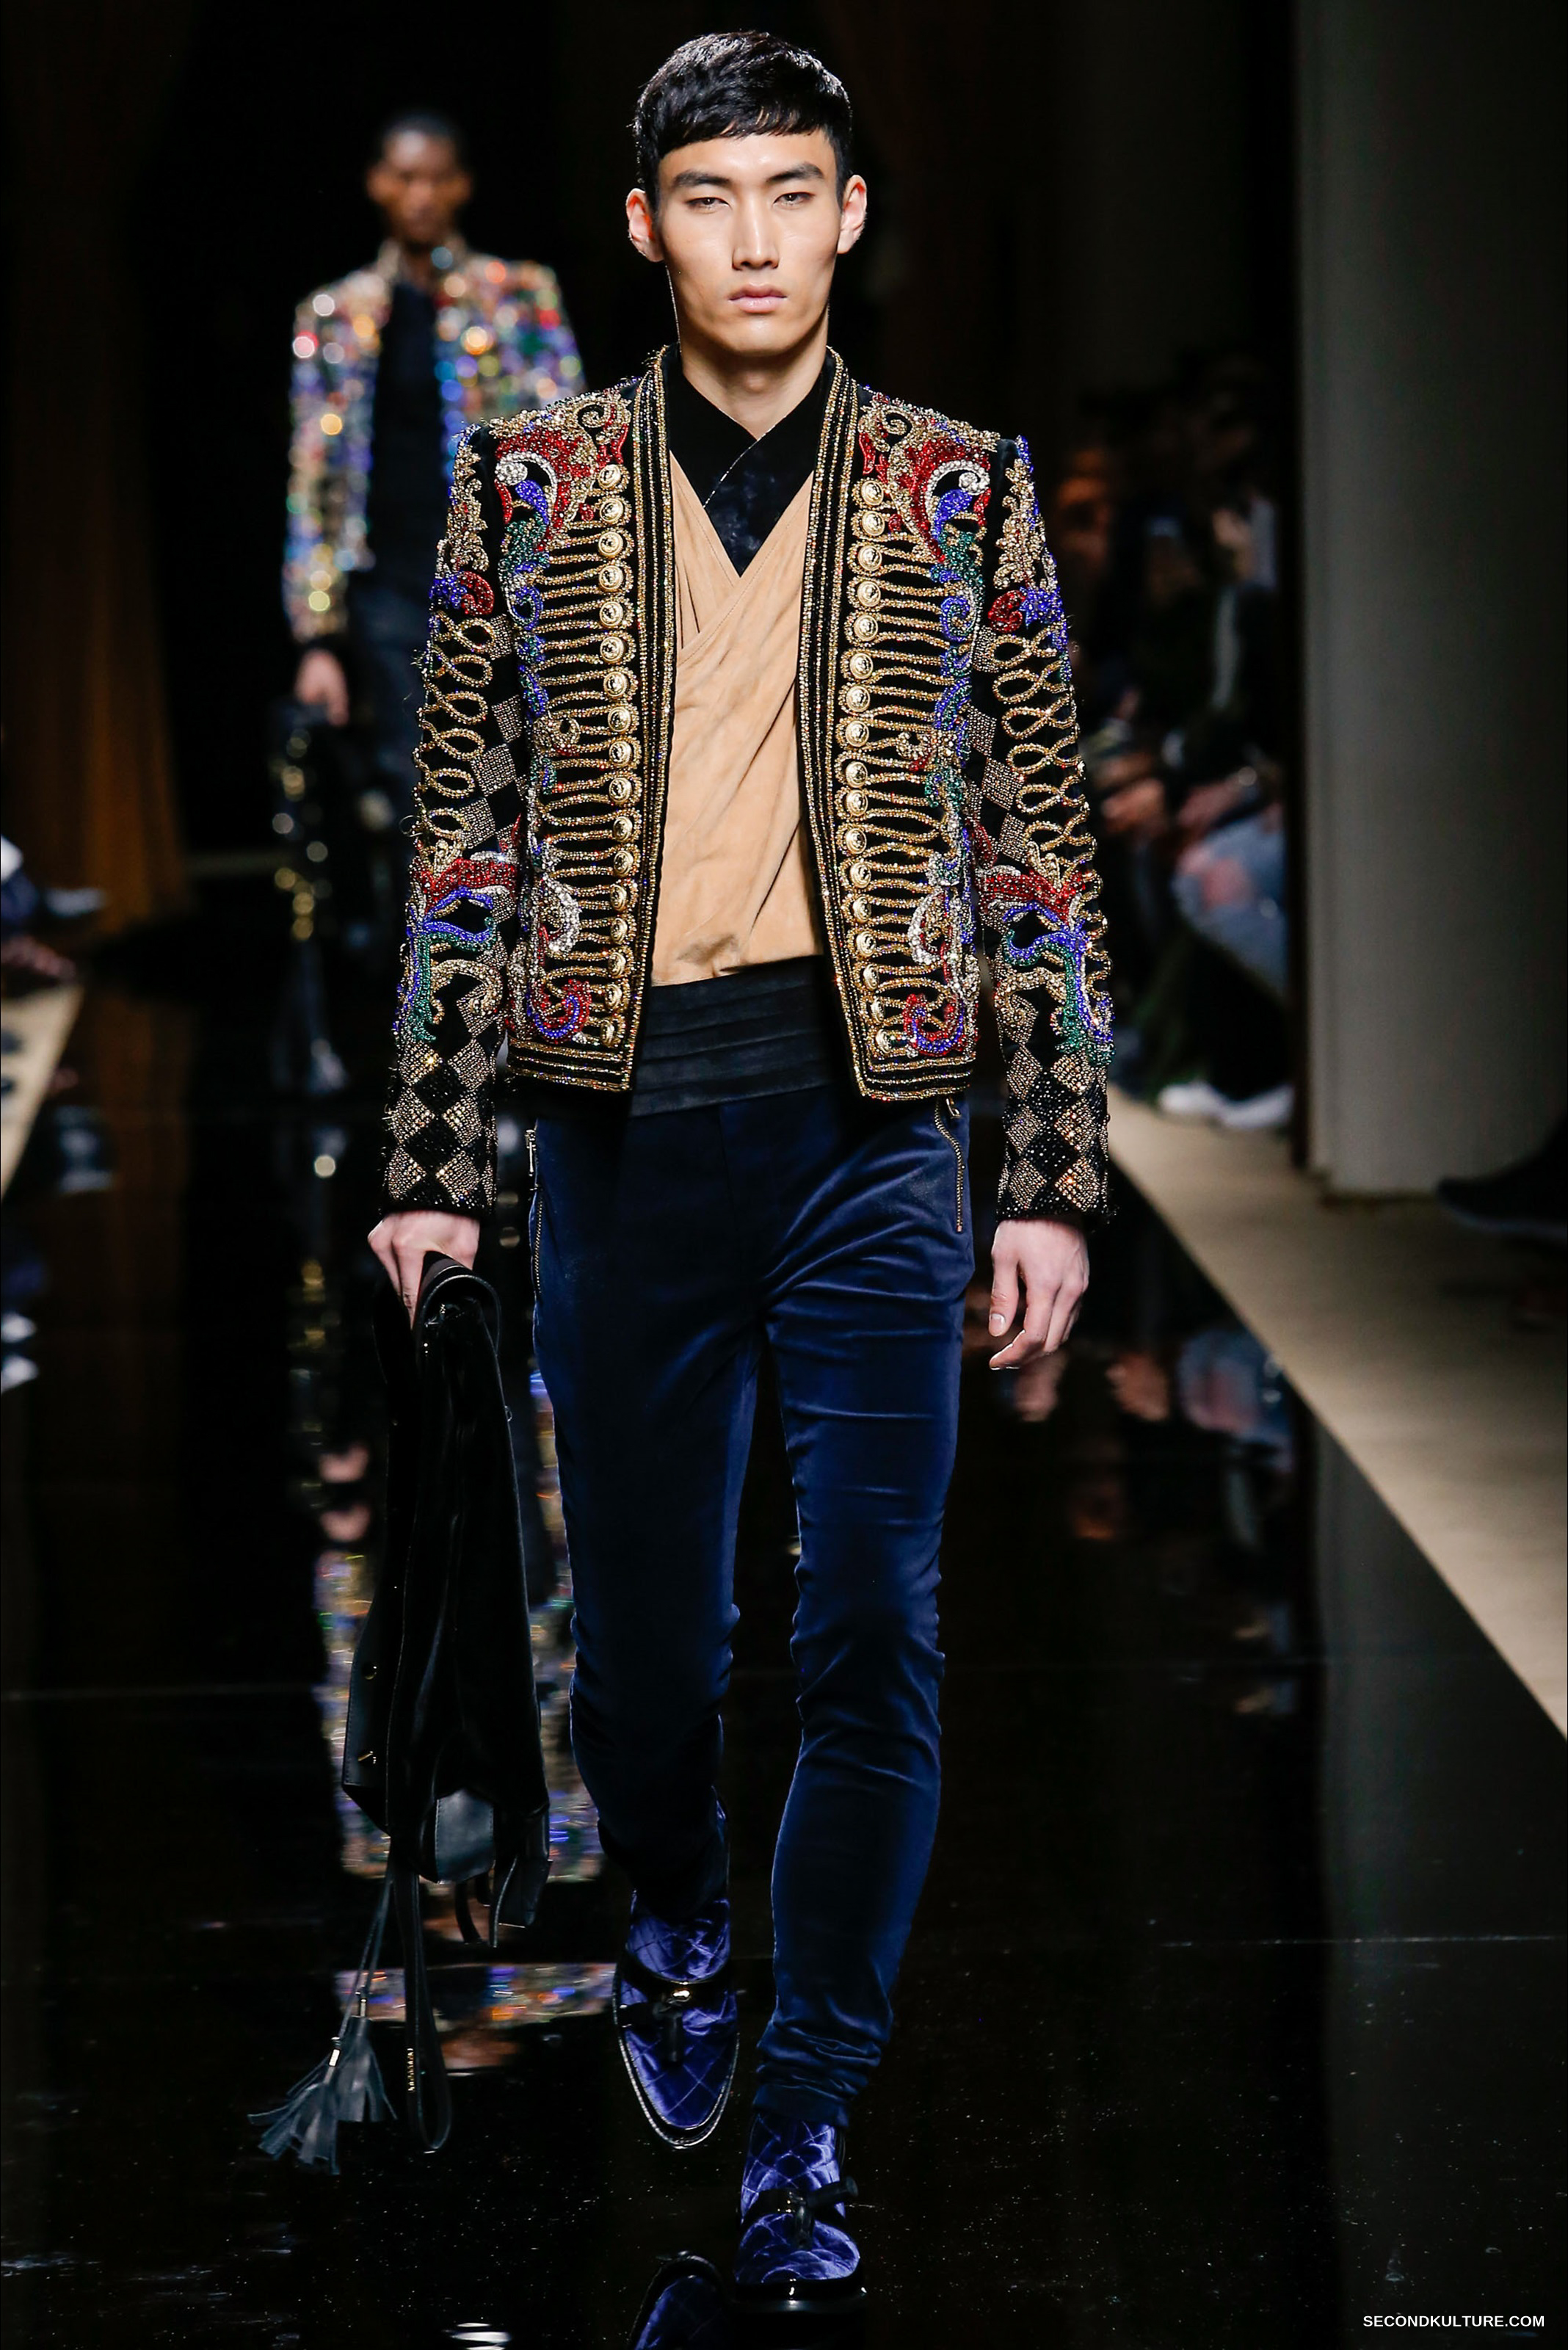 Balmain Fall Winter 2016 Menswear - Look 36/63